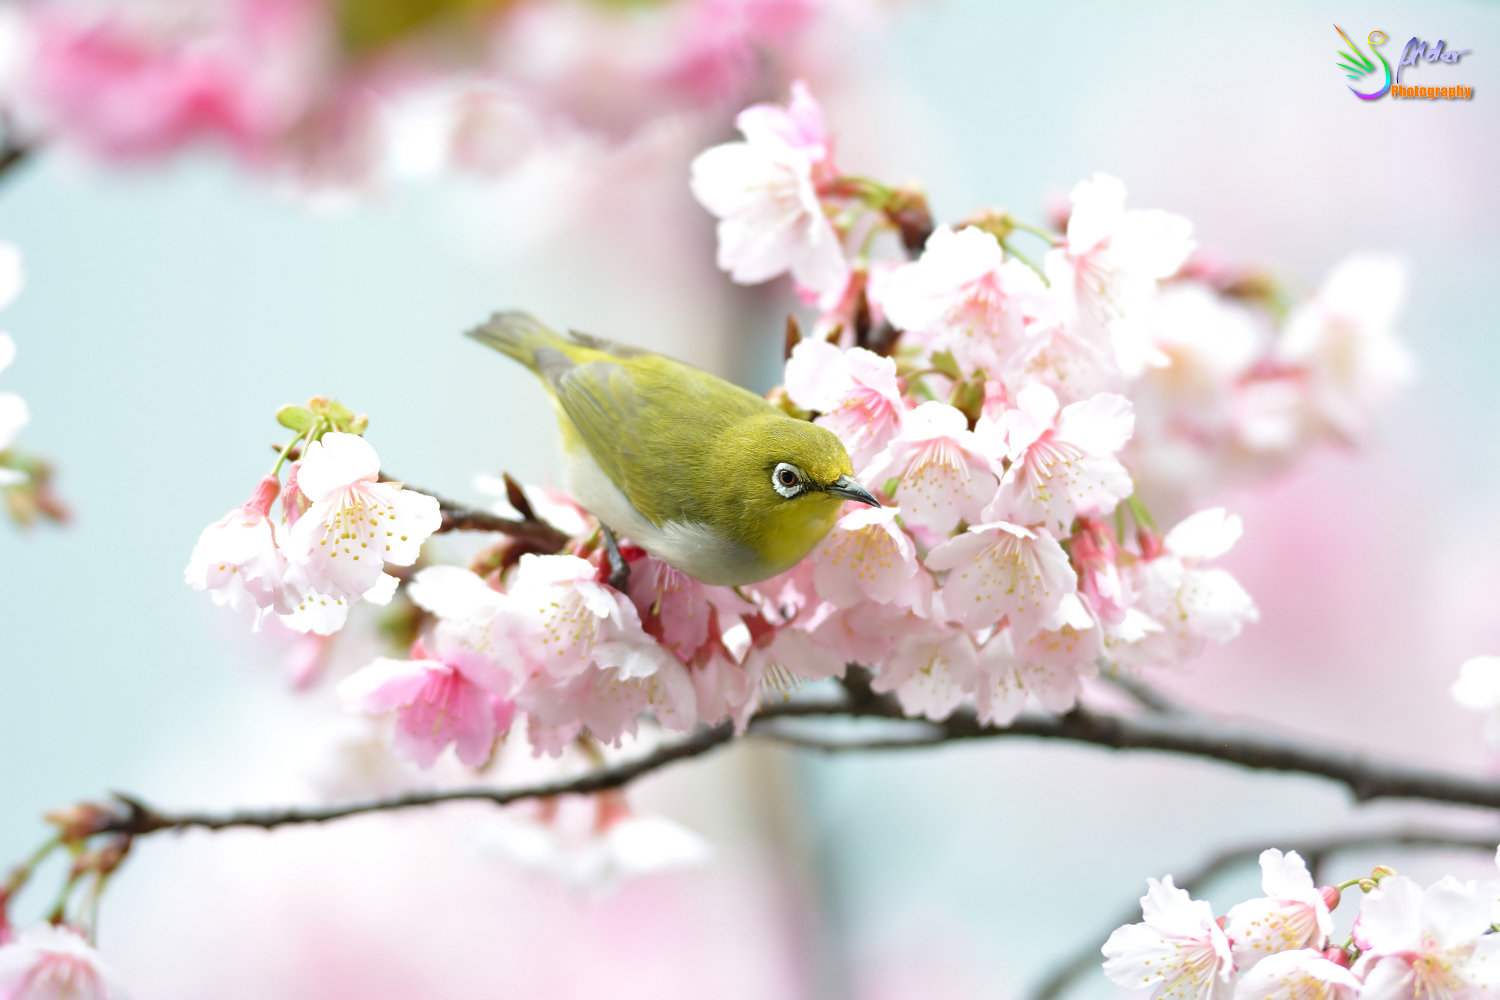 Sakura_White-eye_7224